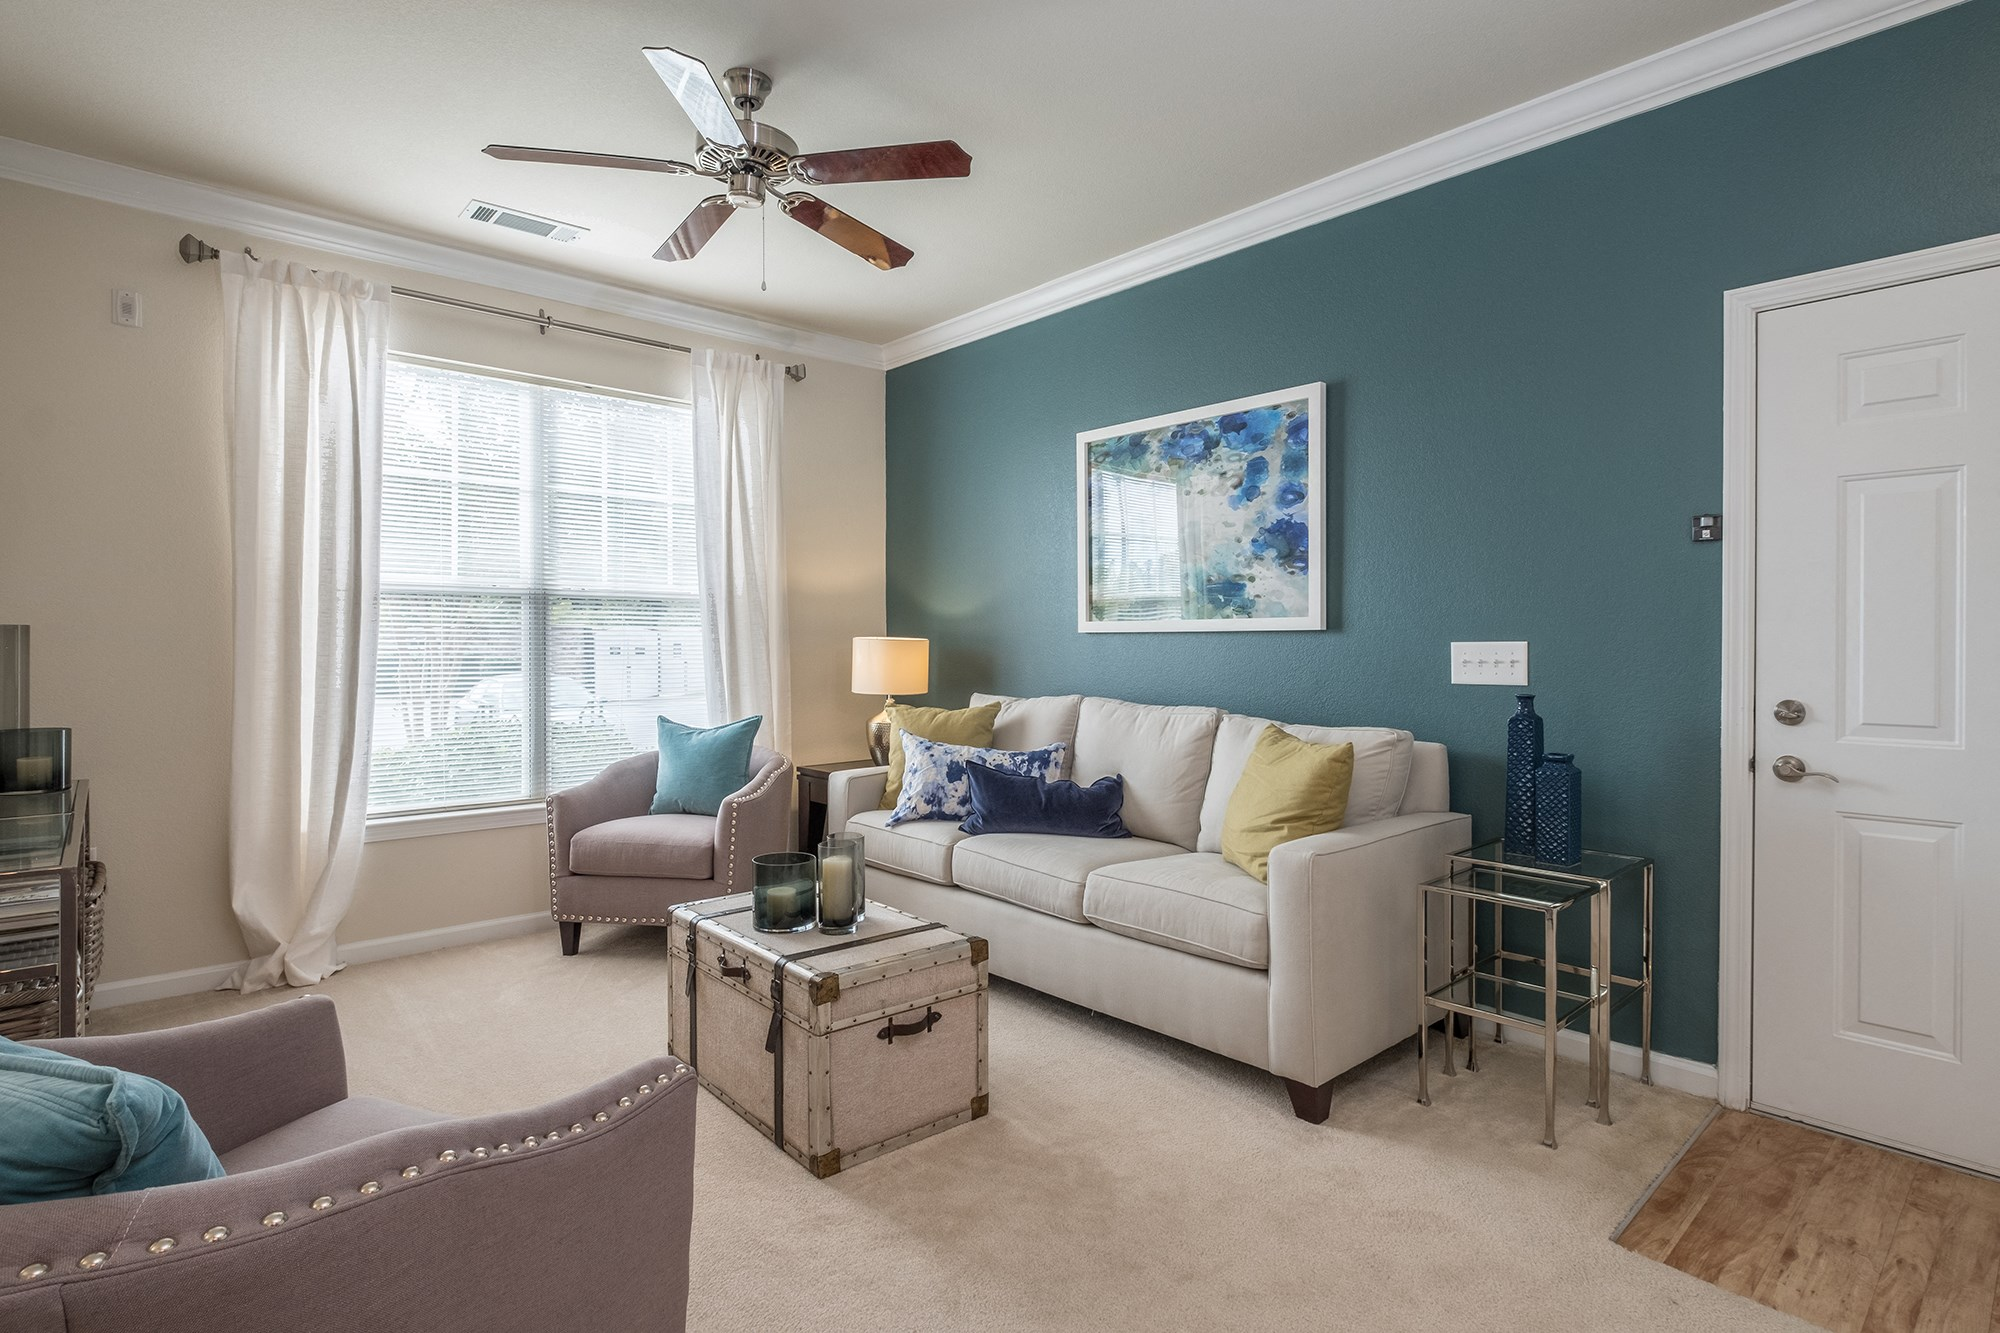 Living Room at View at Legacy Oaks Apartments in Knightdale, NC